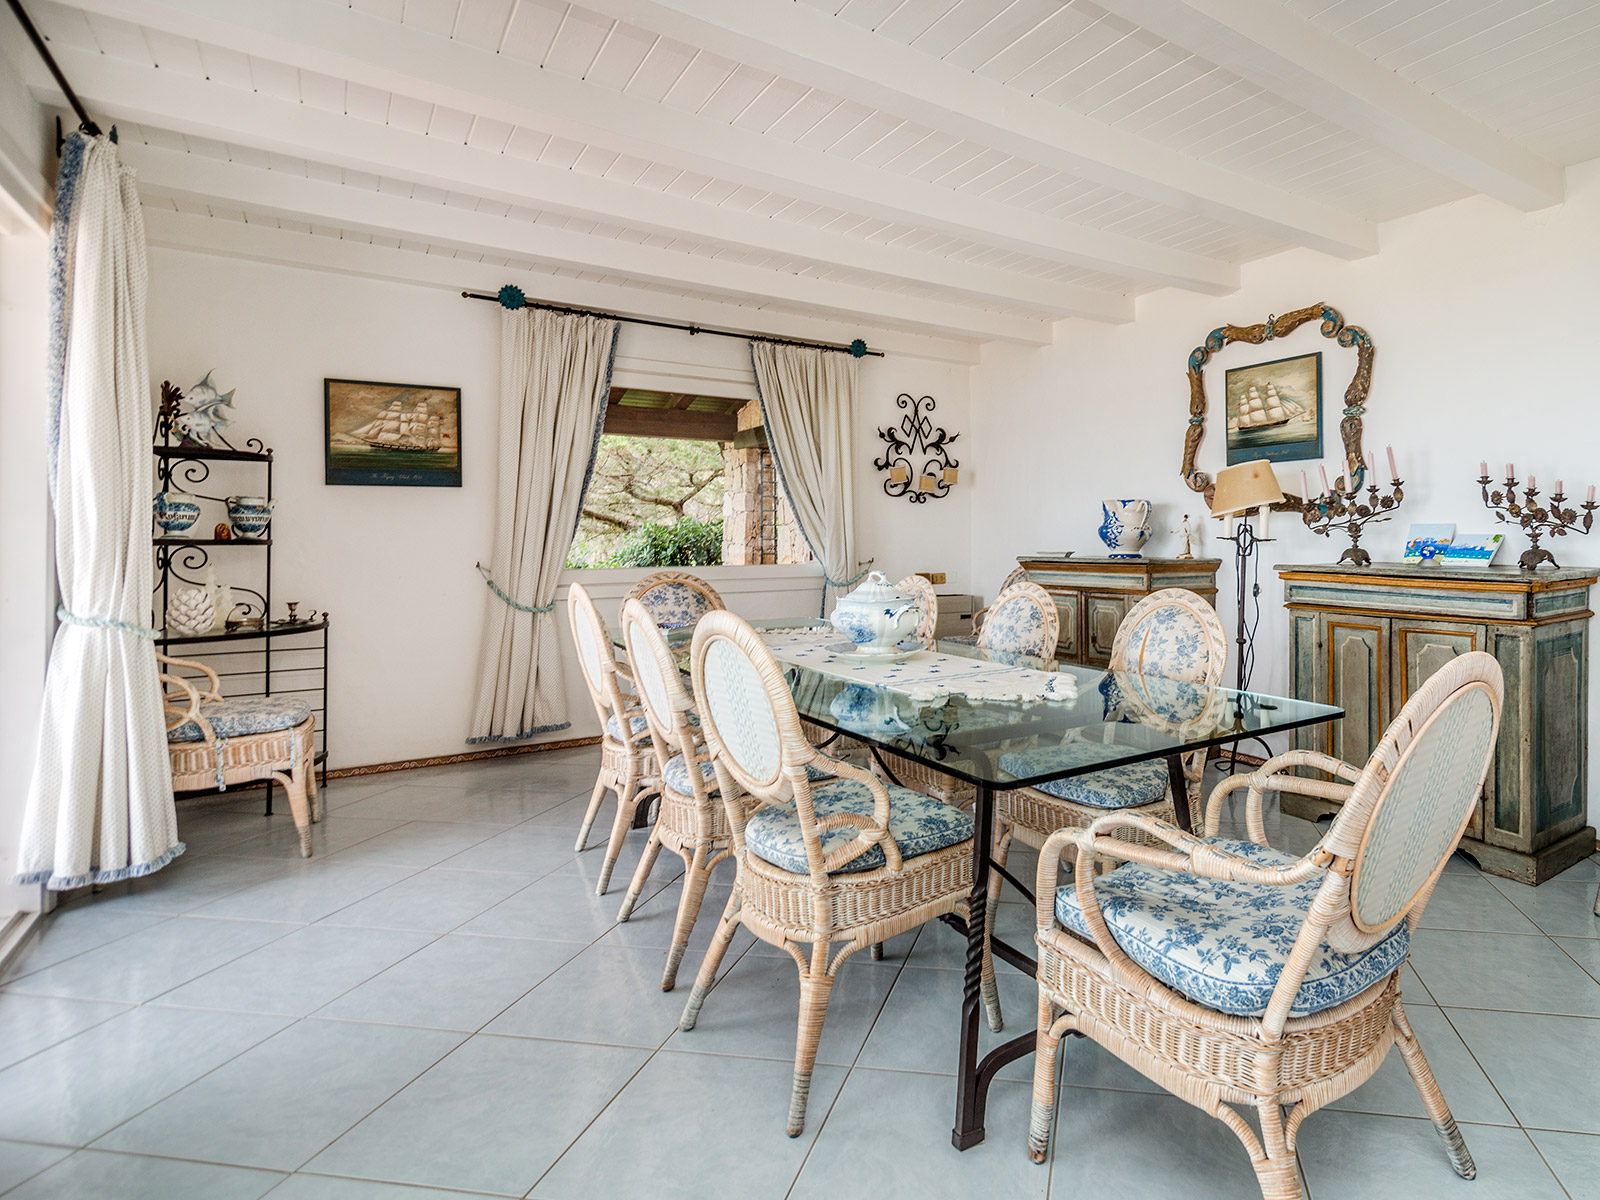 Additional photo for property listing at Villa in Sardinian style with private garden Porto Rotondo, Olbia Tempio Italia